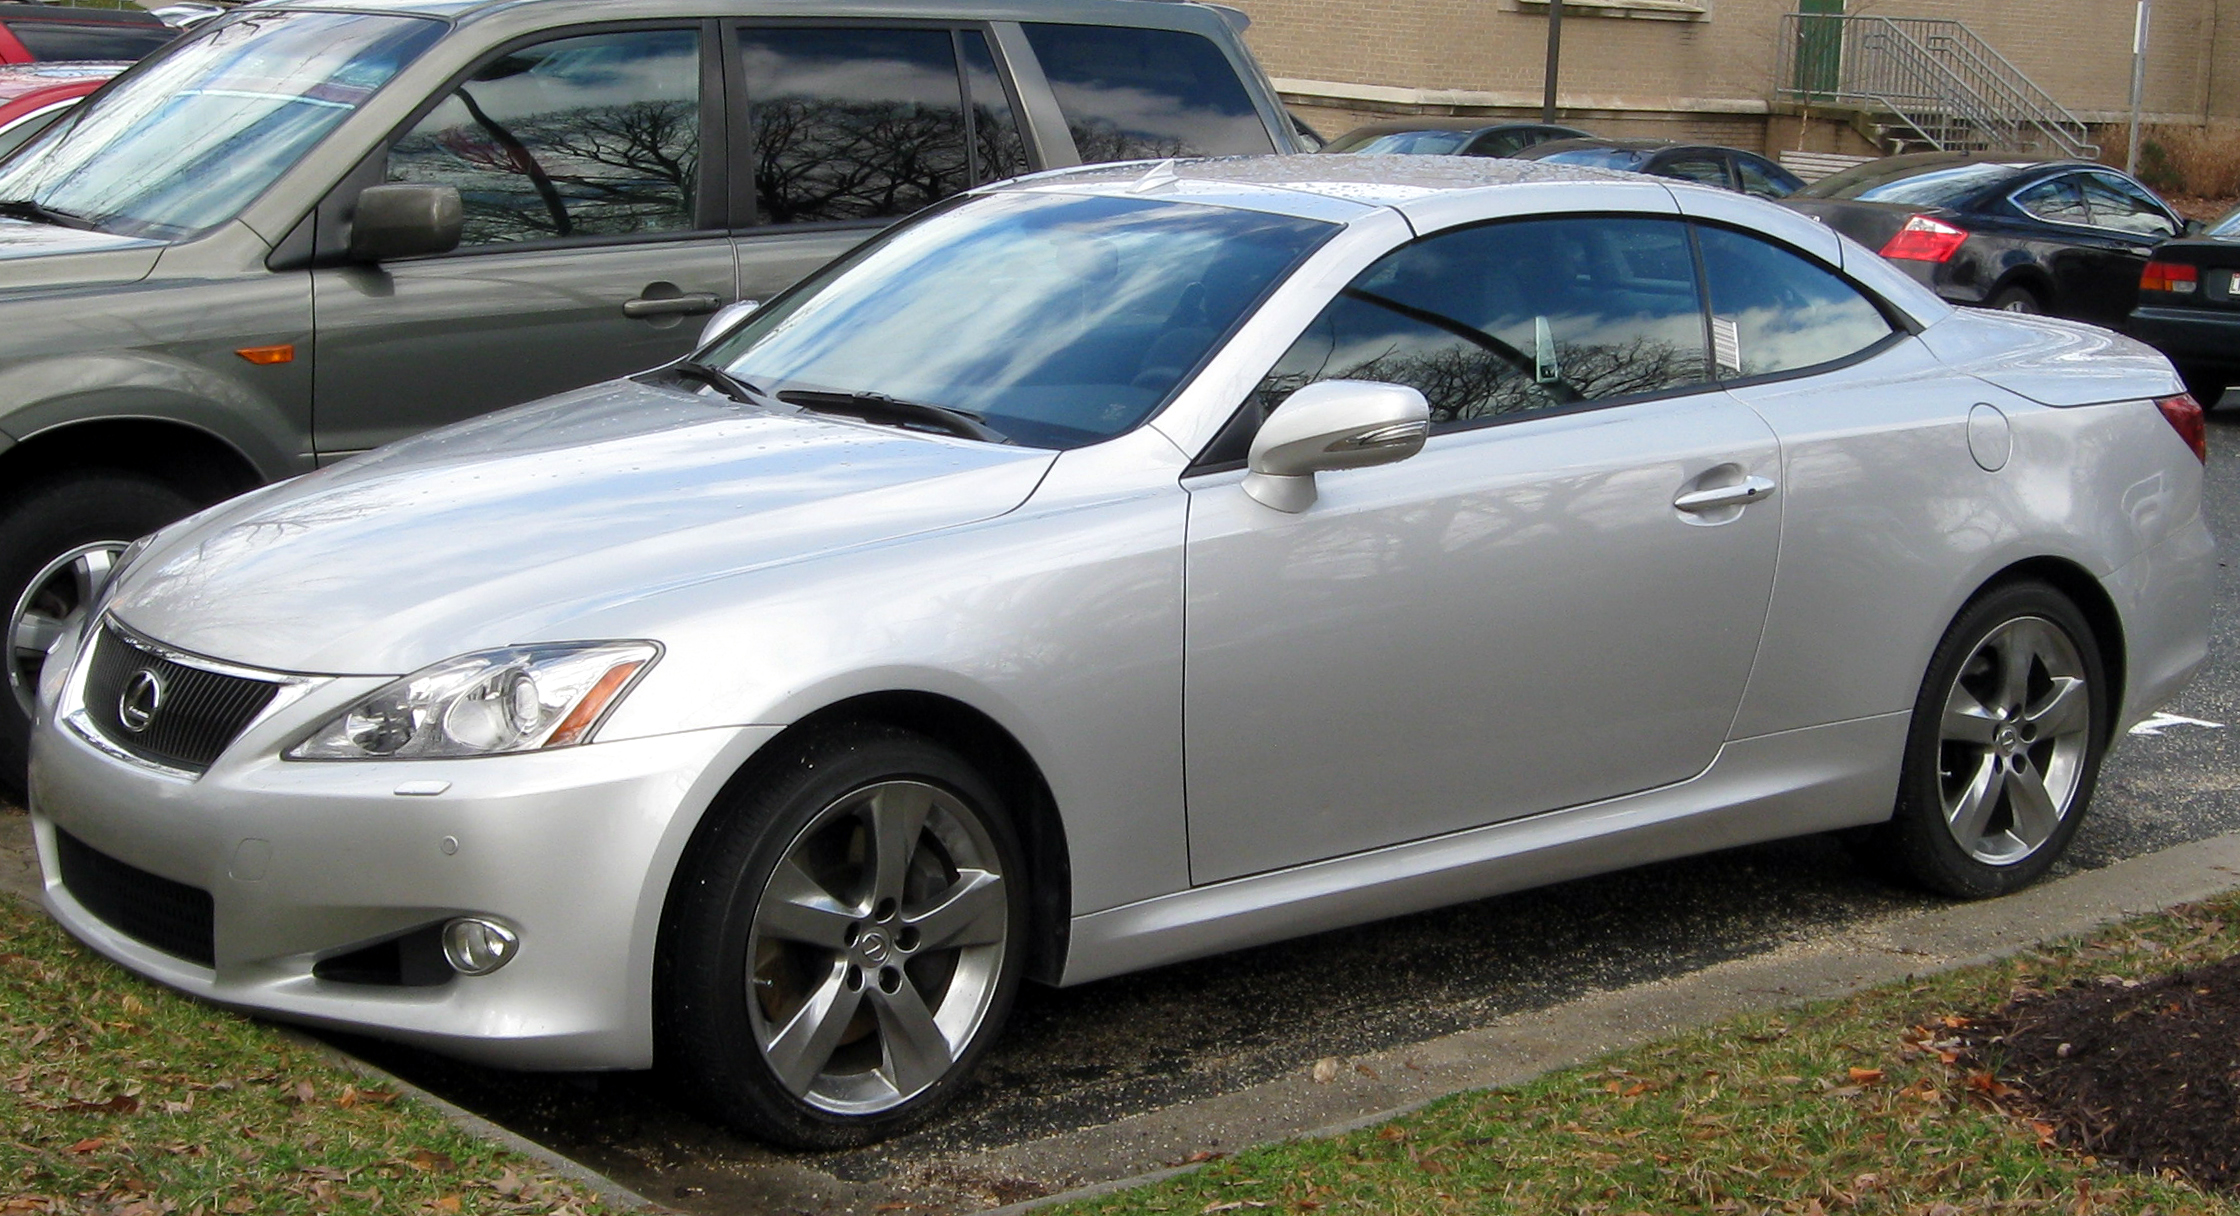 File Lexus IS convertible 01 27 2012 Wikimedia mons